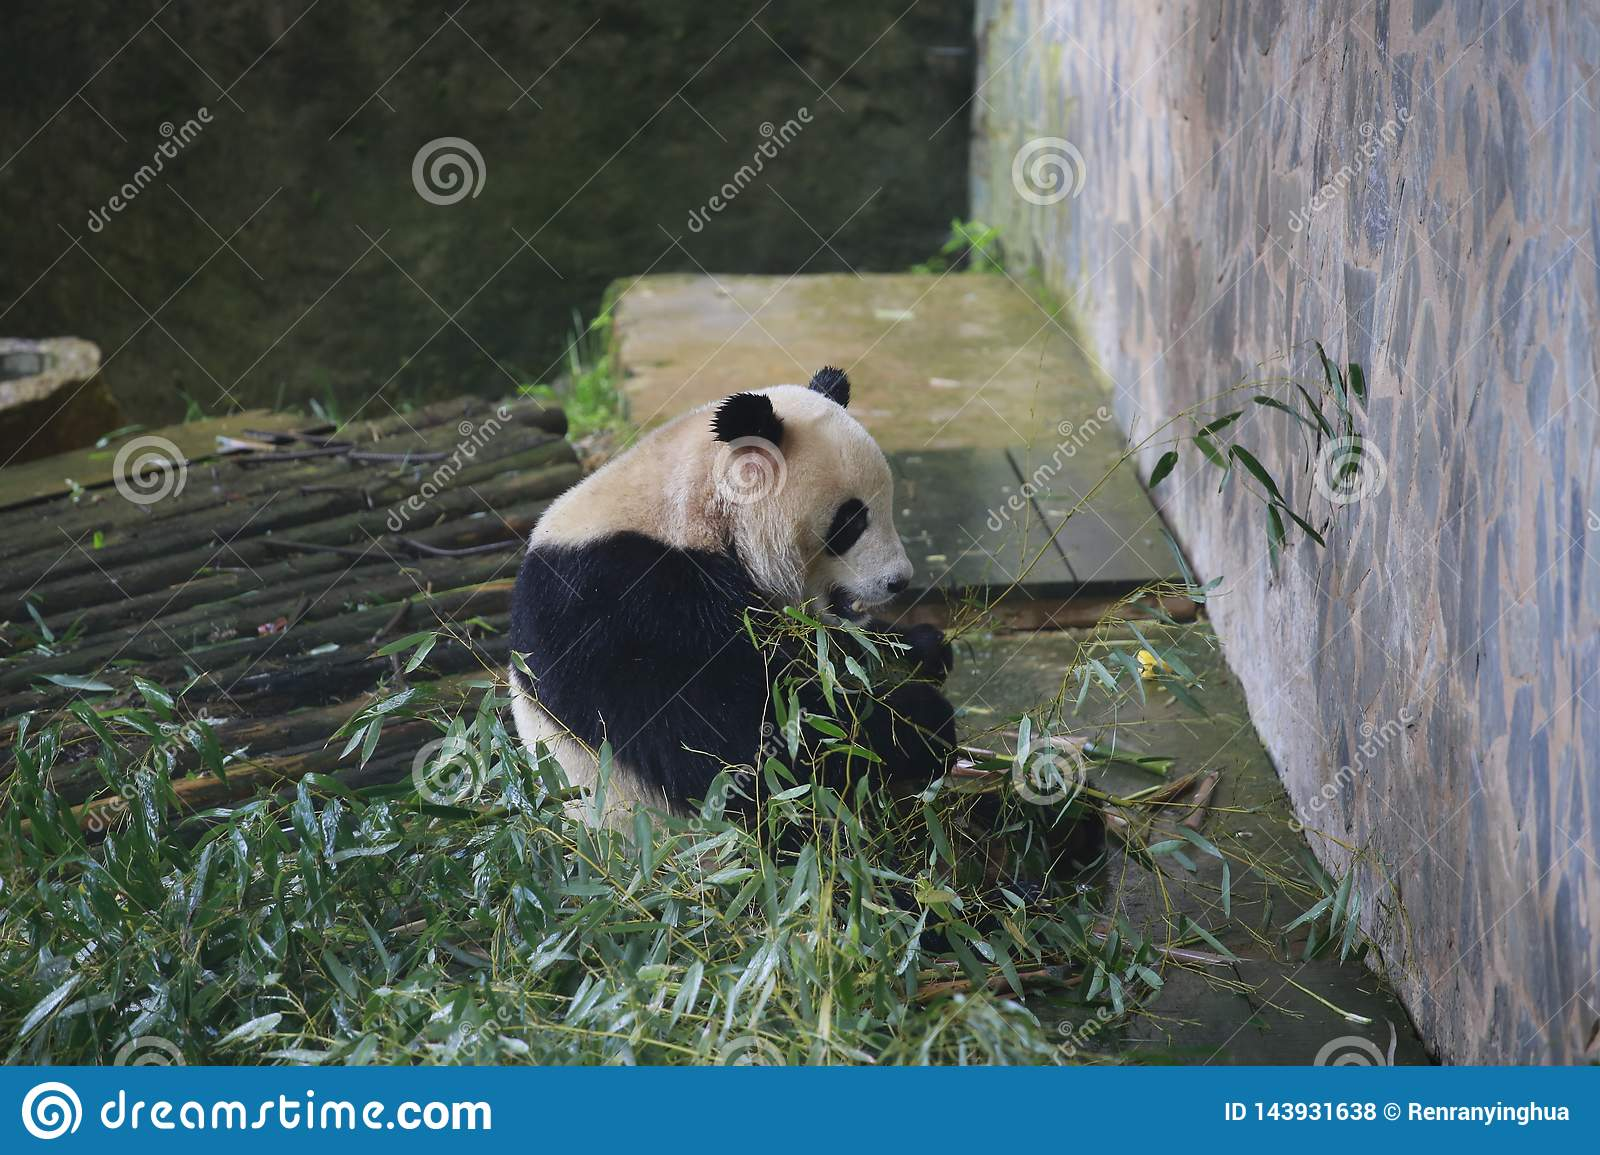 The Giant Panda Belongs To The Only Mammals Of The ...